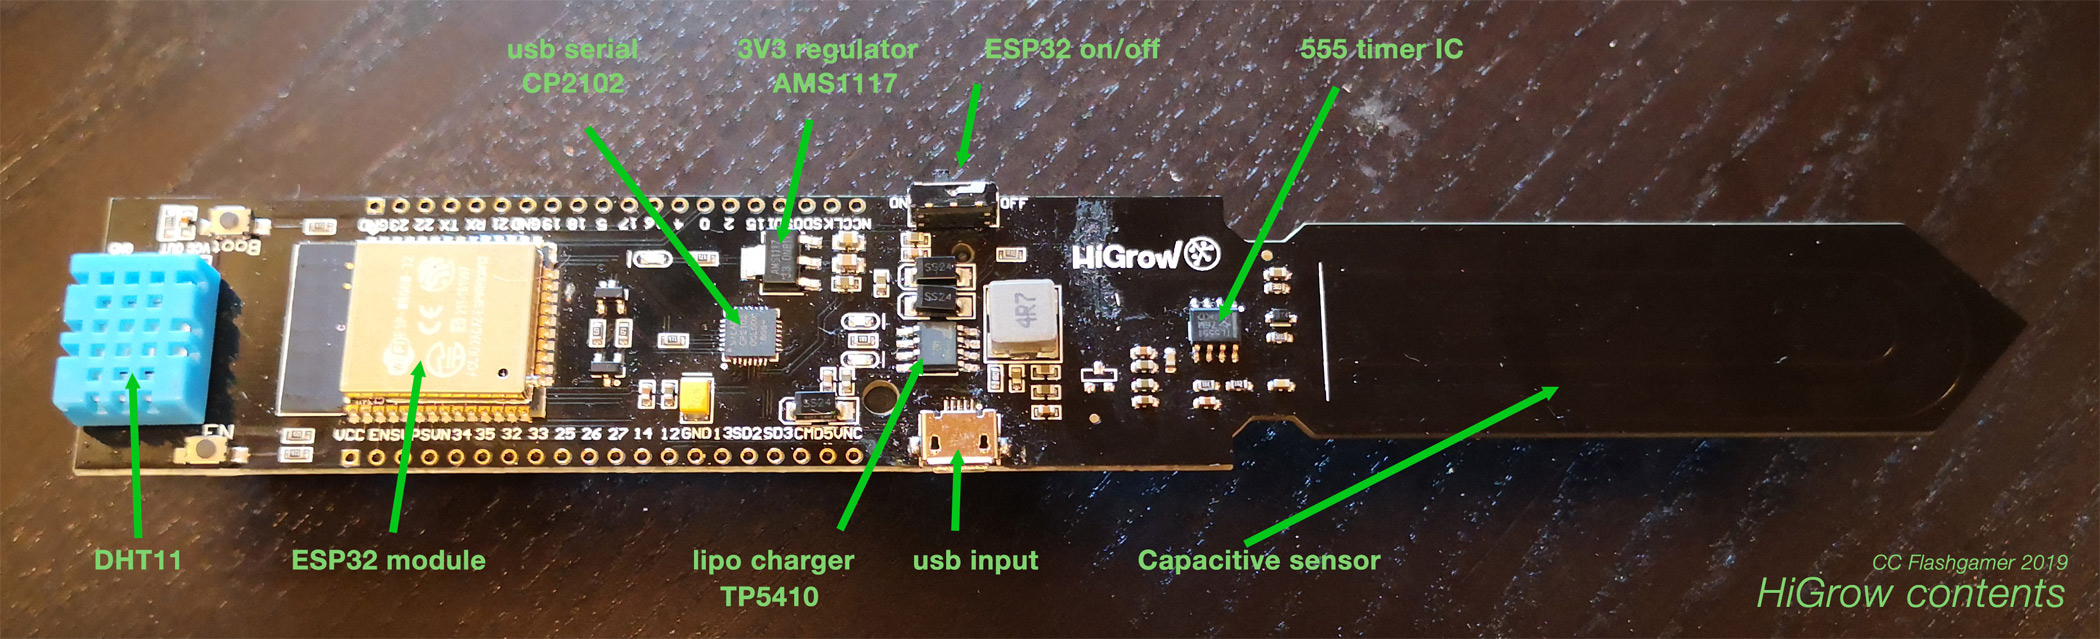 Sensor and IC's on the board